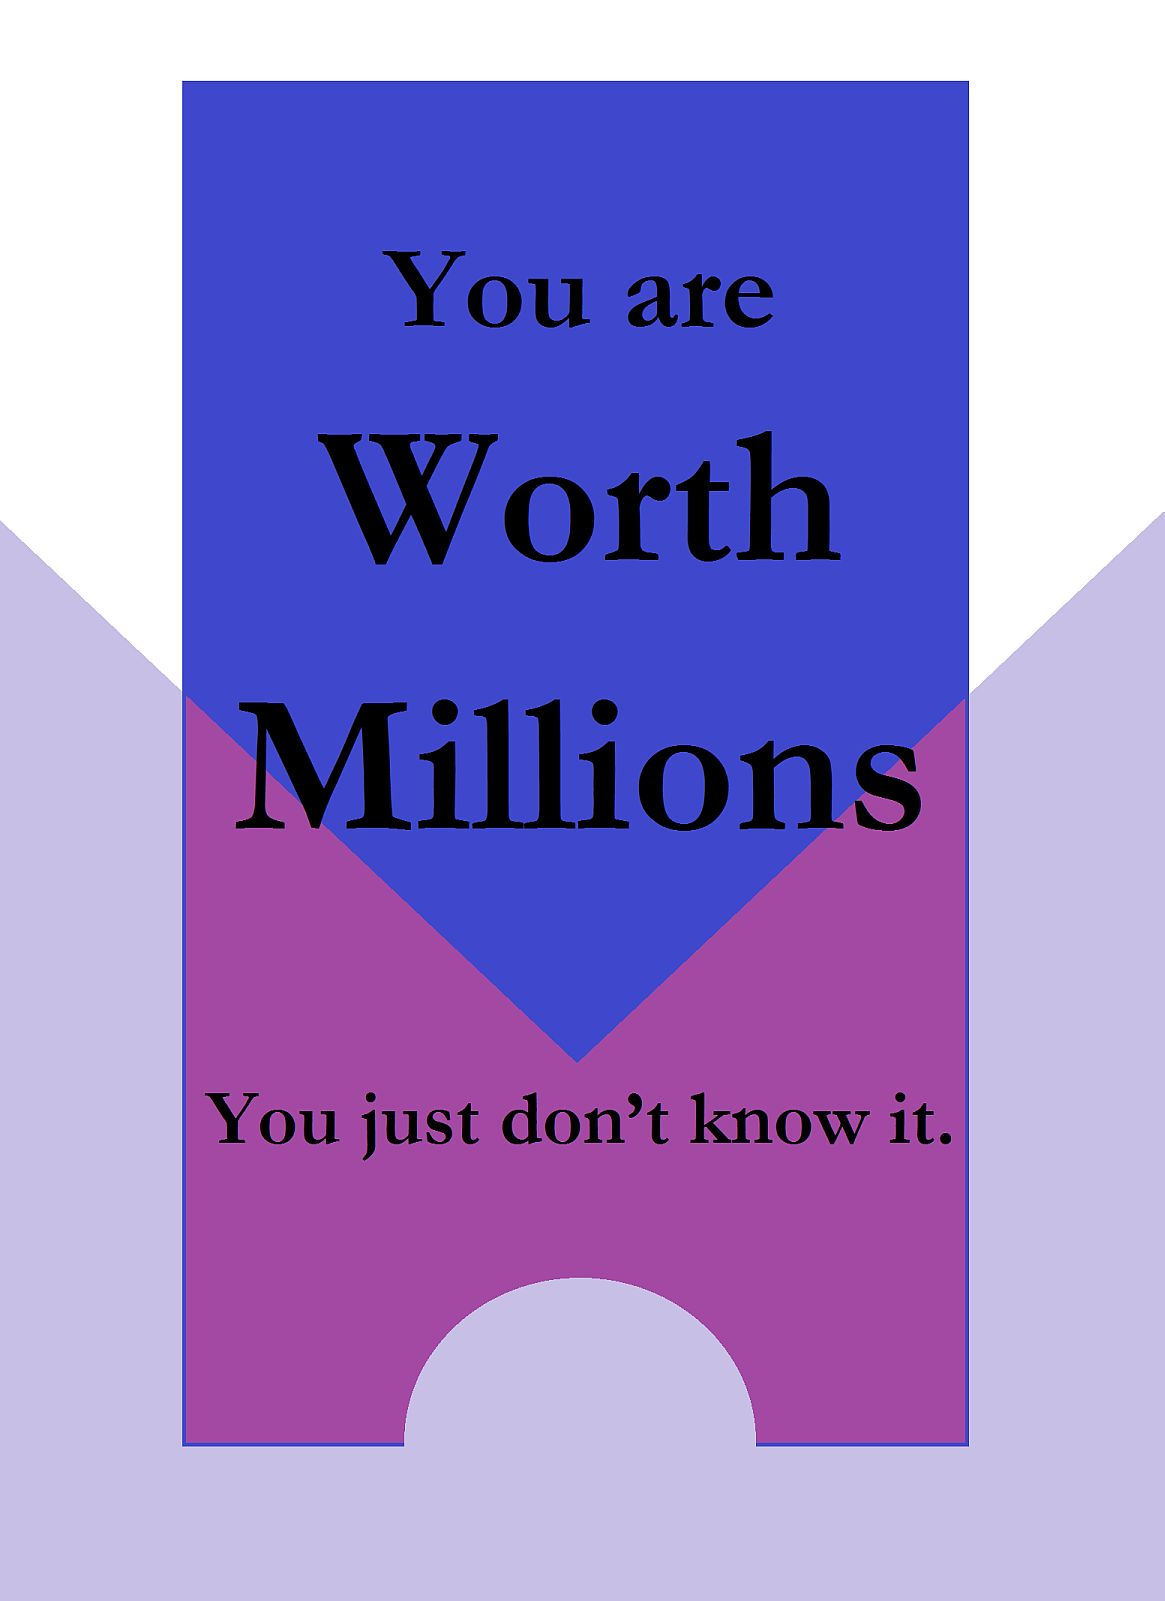 You are worth millions you just don't know it